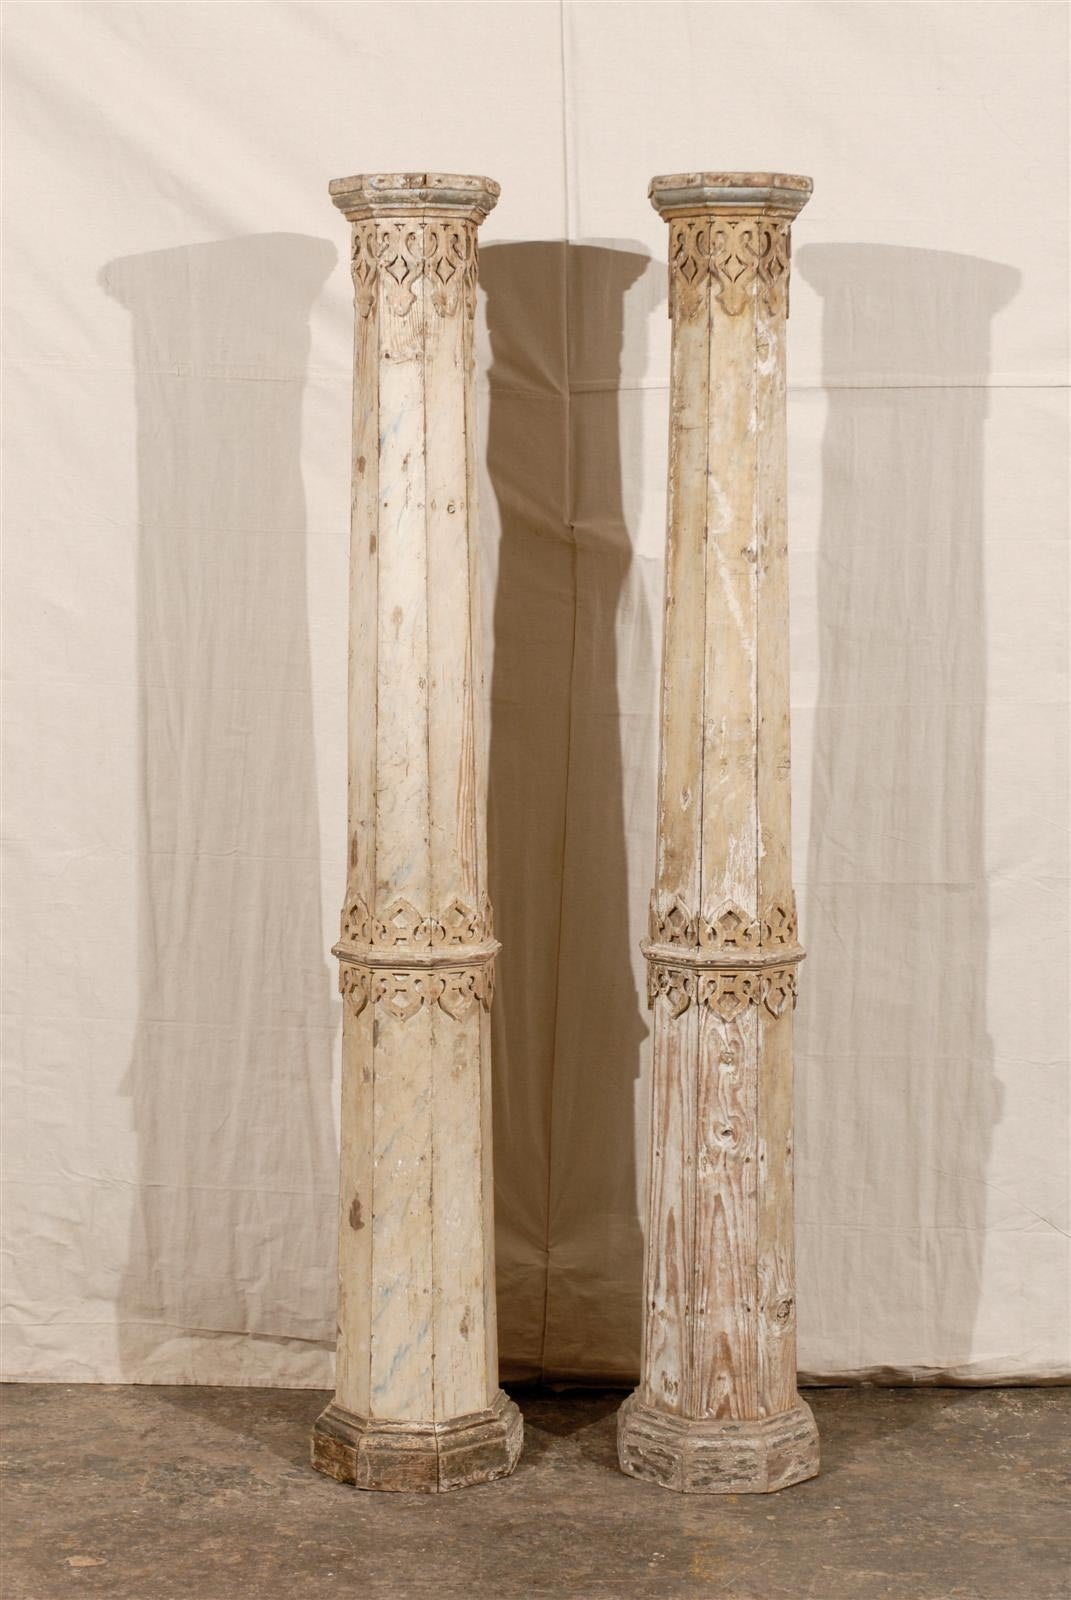 A pair of exquisite European mid-19th century wooden octagonal columns. This pair of wooden slender columns features a delicate and intricate decor which could be reminiscent of the Alhambra in Grenada, Spain. The octagonal base is quite simple, but